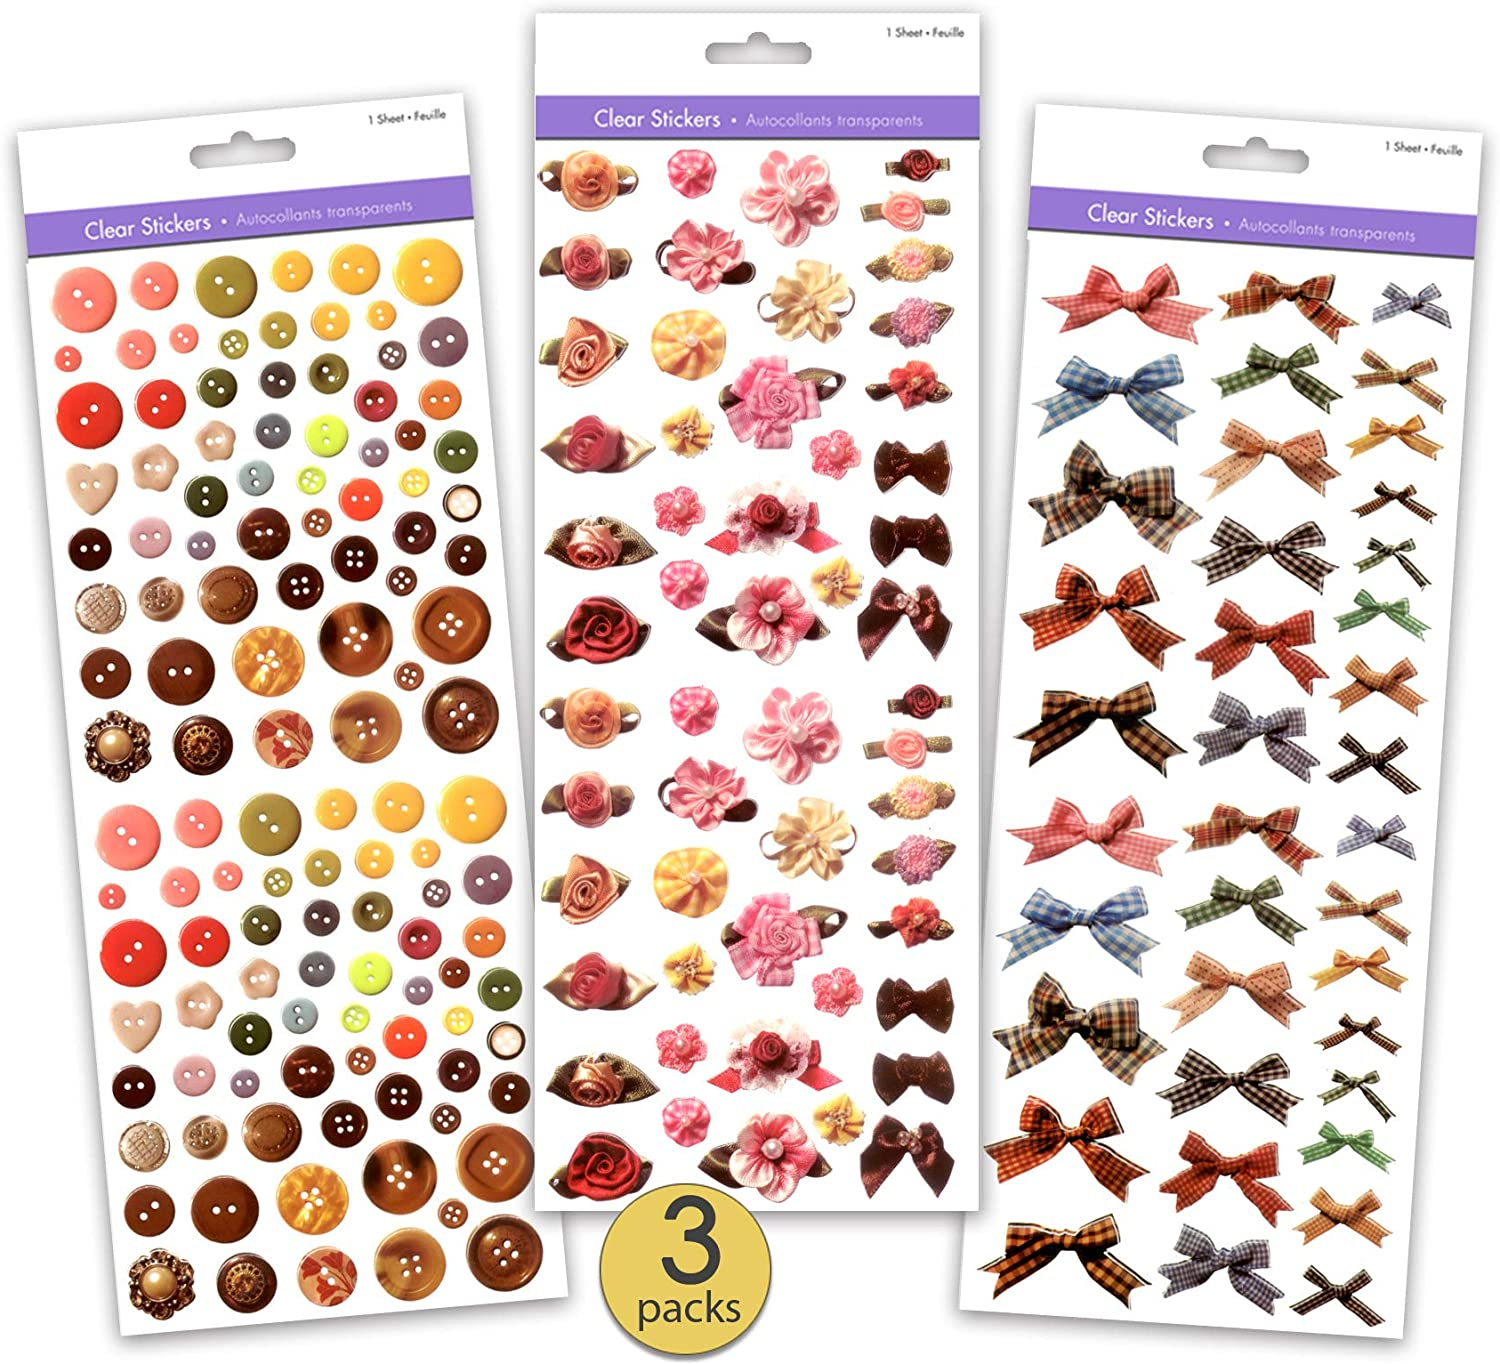 Set of 3 Jumbo Packs - Clear Scrapbook Stickers Featuring Real Photos of Ribbon pinks, Ribbon Bows, Plaid Ribbon Bows, and Buttons - Bulk Pack